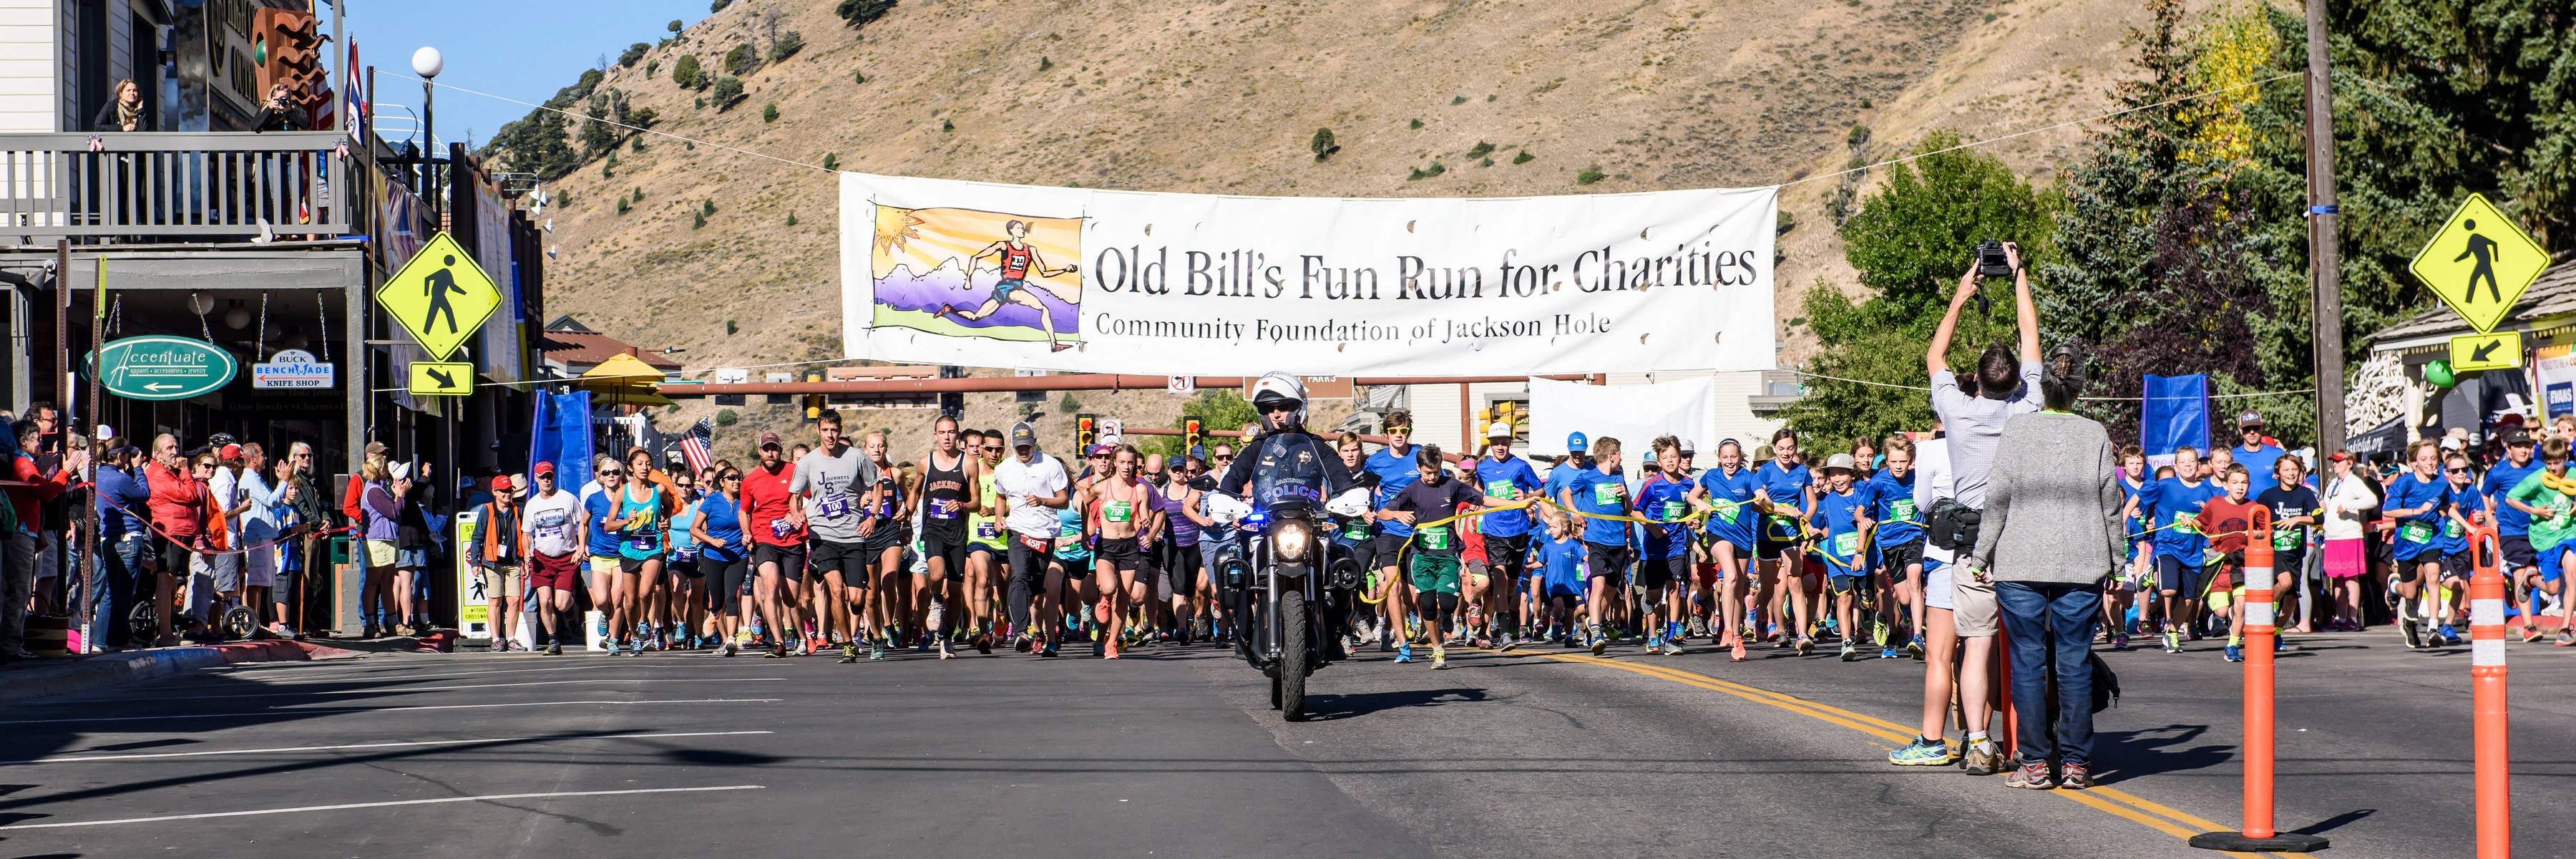 Old Bill's Fun Run 2018. Photo by JH Community Foundation